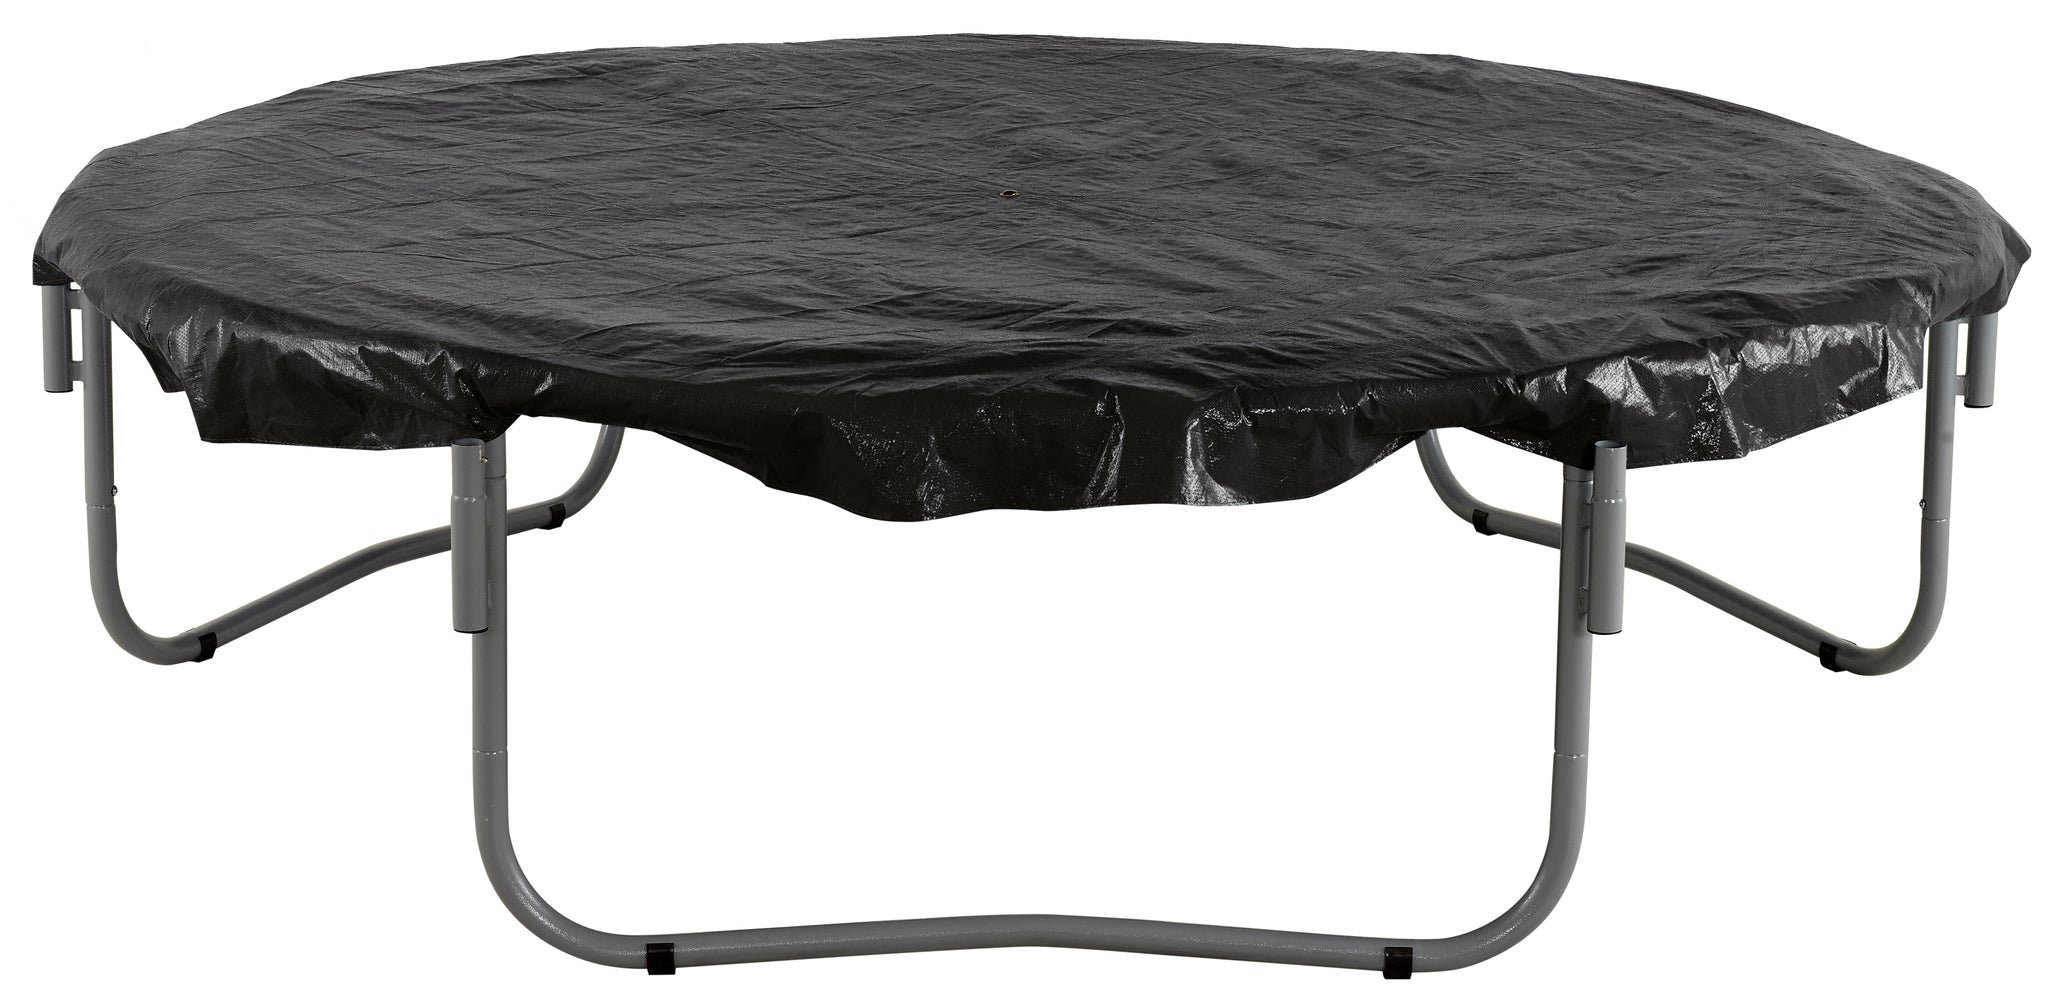 Upper Bounce 16 Trampoline Protection Cover Fits for 16 FT Black Round Trampoline Frames Weather /& Rain Cover